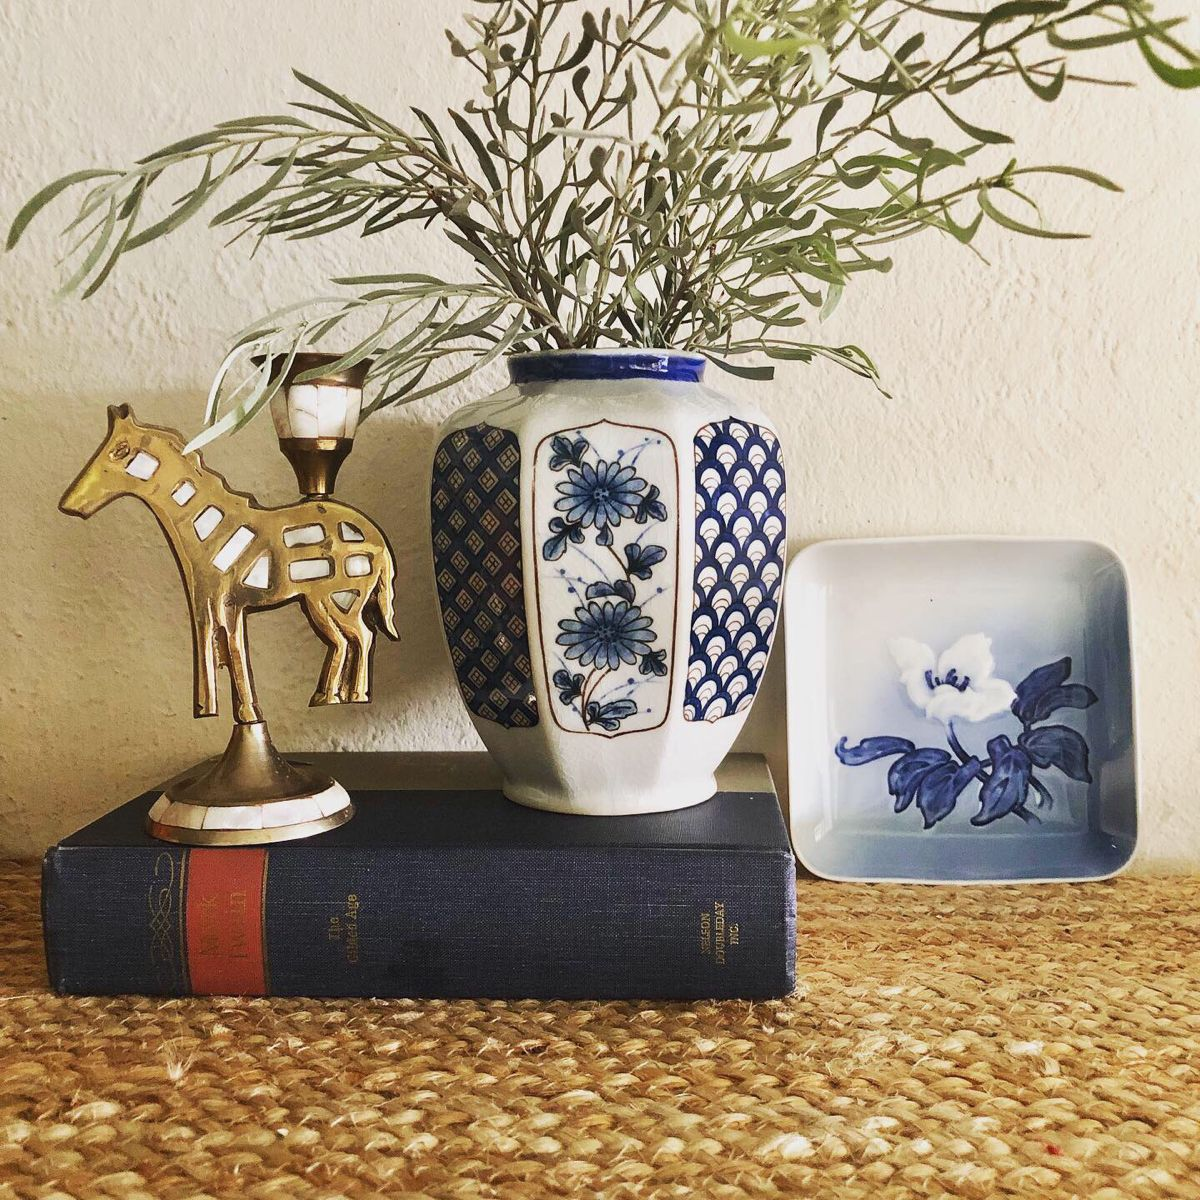 We just added these pretty blue and white pieces to our shop! The vase has alternating patterns on each side and it beautiful on its own or with flowers. The Bing and Grondahl plate is perfect holding jewelry or as a little soap dish. Everything is in our Spike and Daisy Etsy shop! #blueandwhite #blueandwhitedecor #bluedecor #vintagehomedecor #shelfdecorating #coffeetabledecorating #vintagestyle #vintagehome #etsyshop